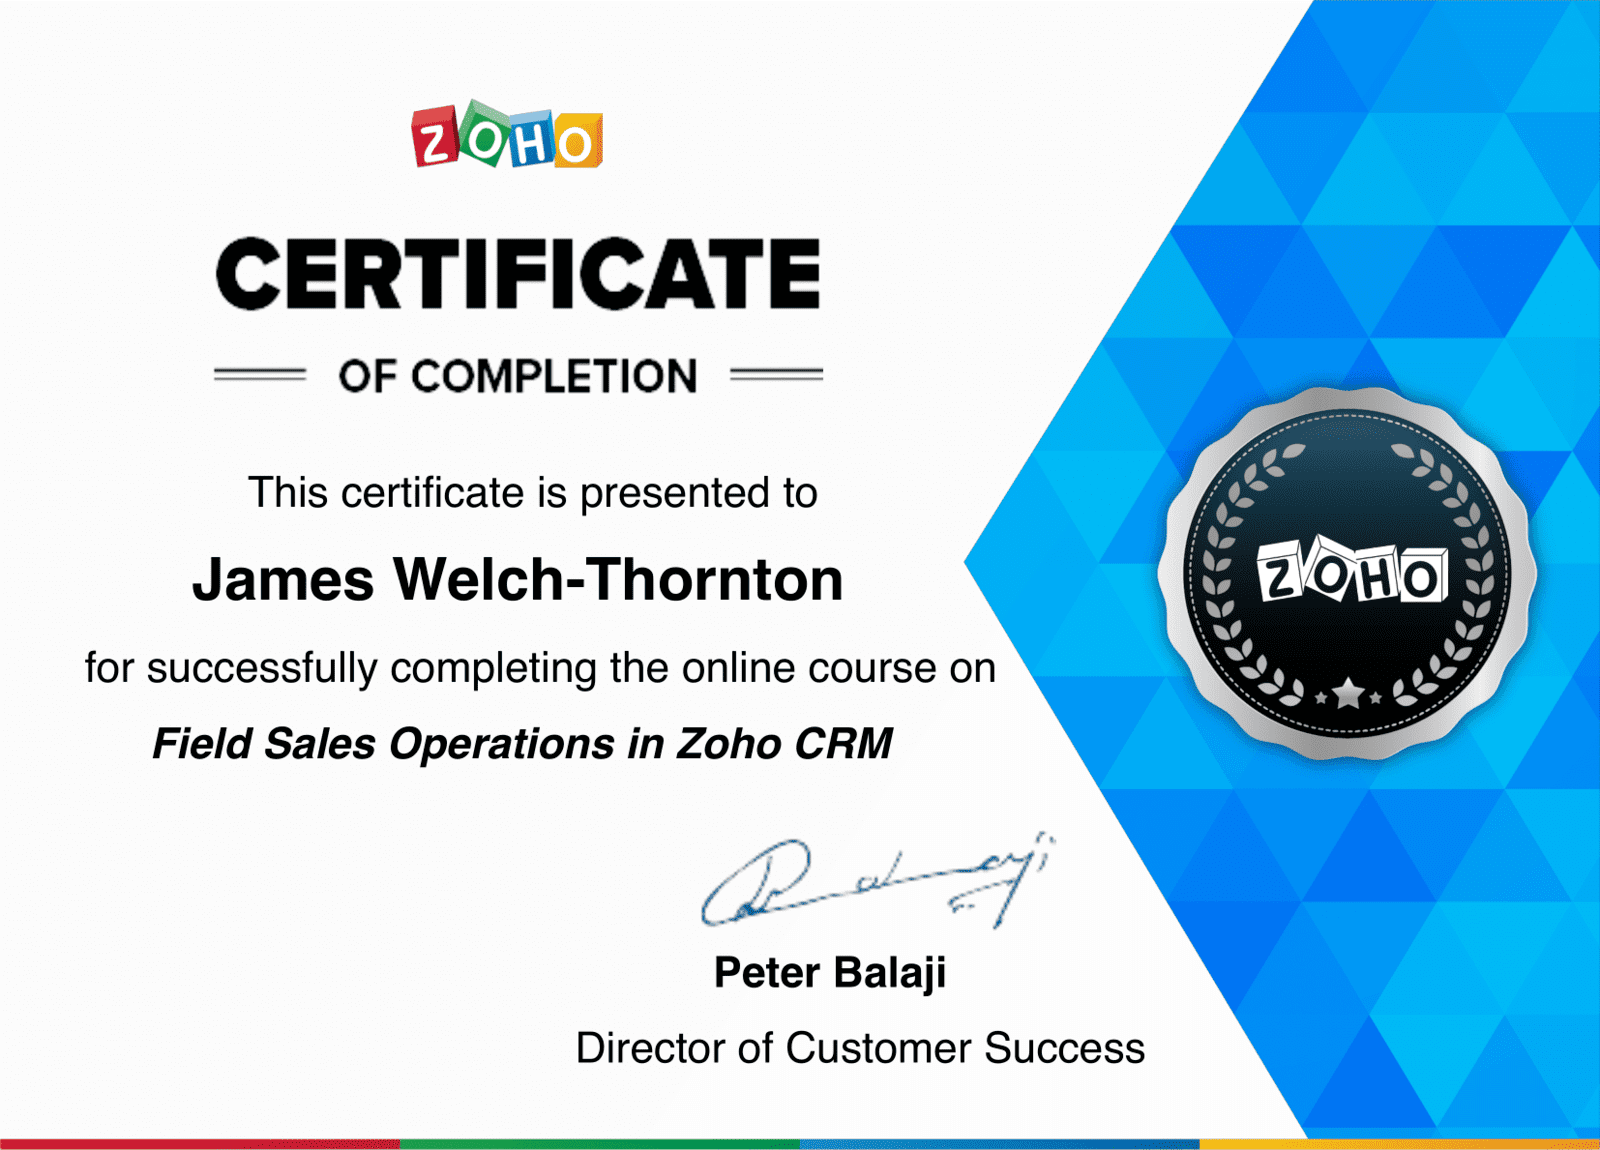 Field Sales Operations in Zoho CRM Certificate